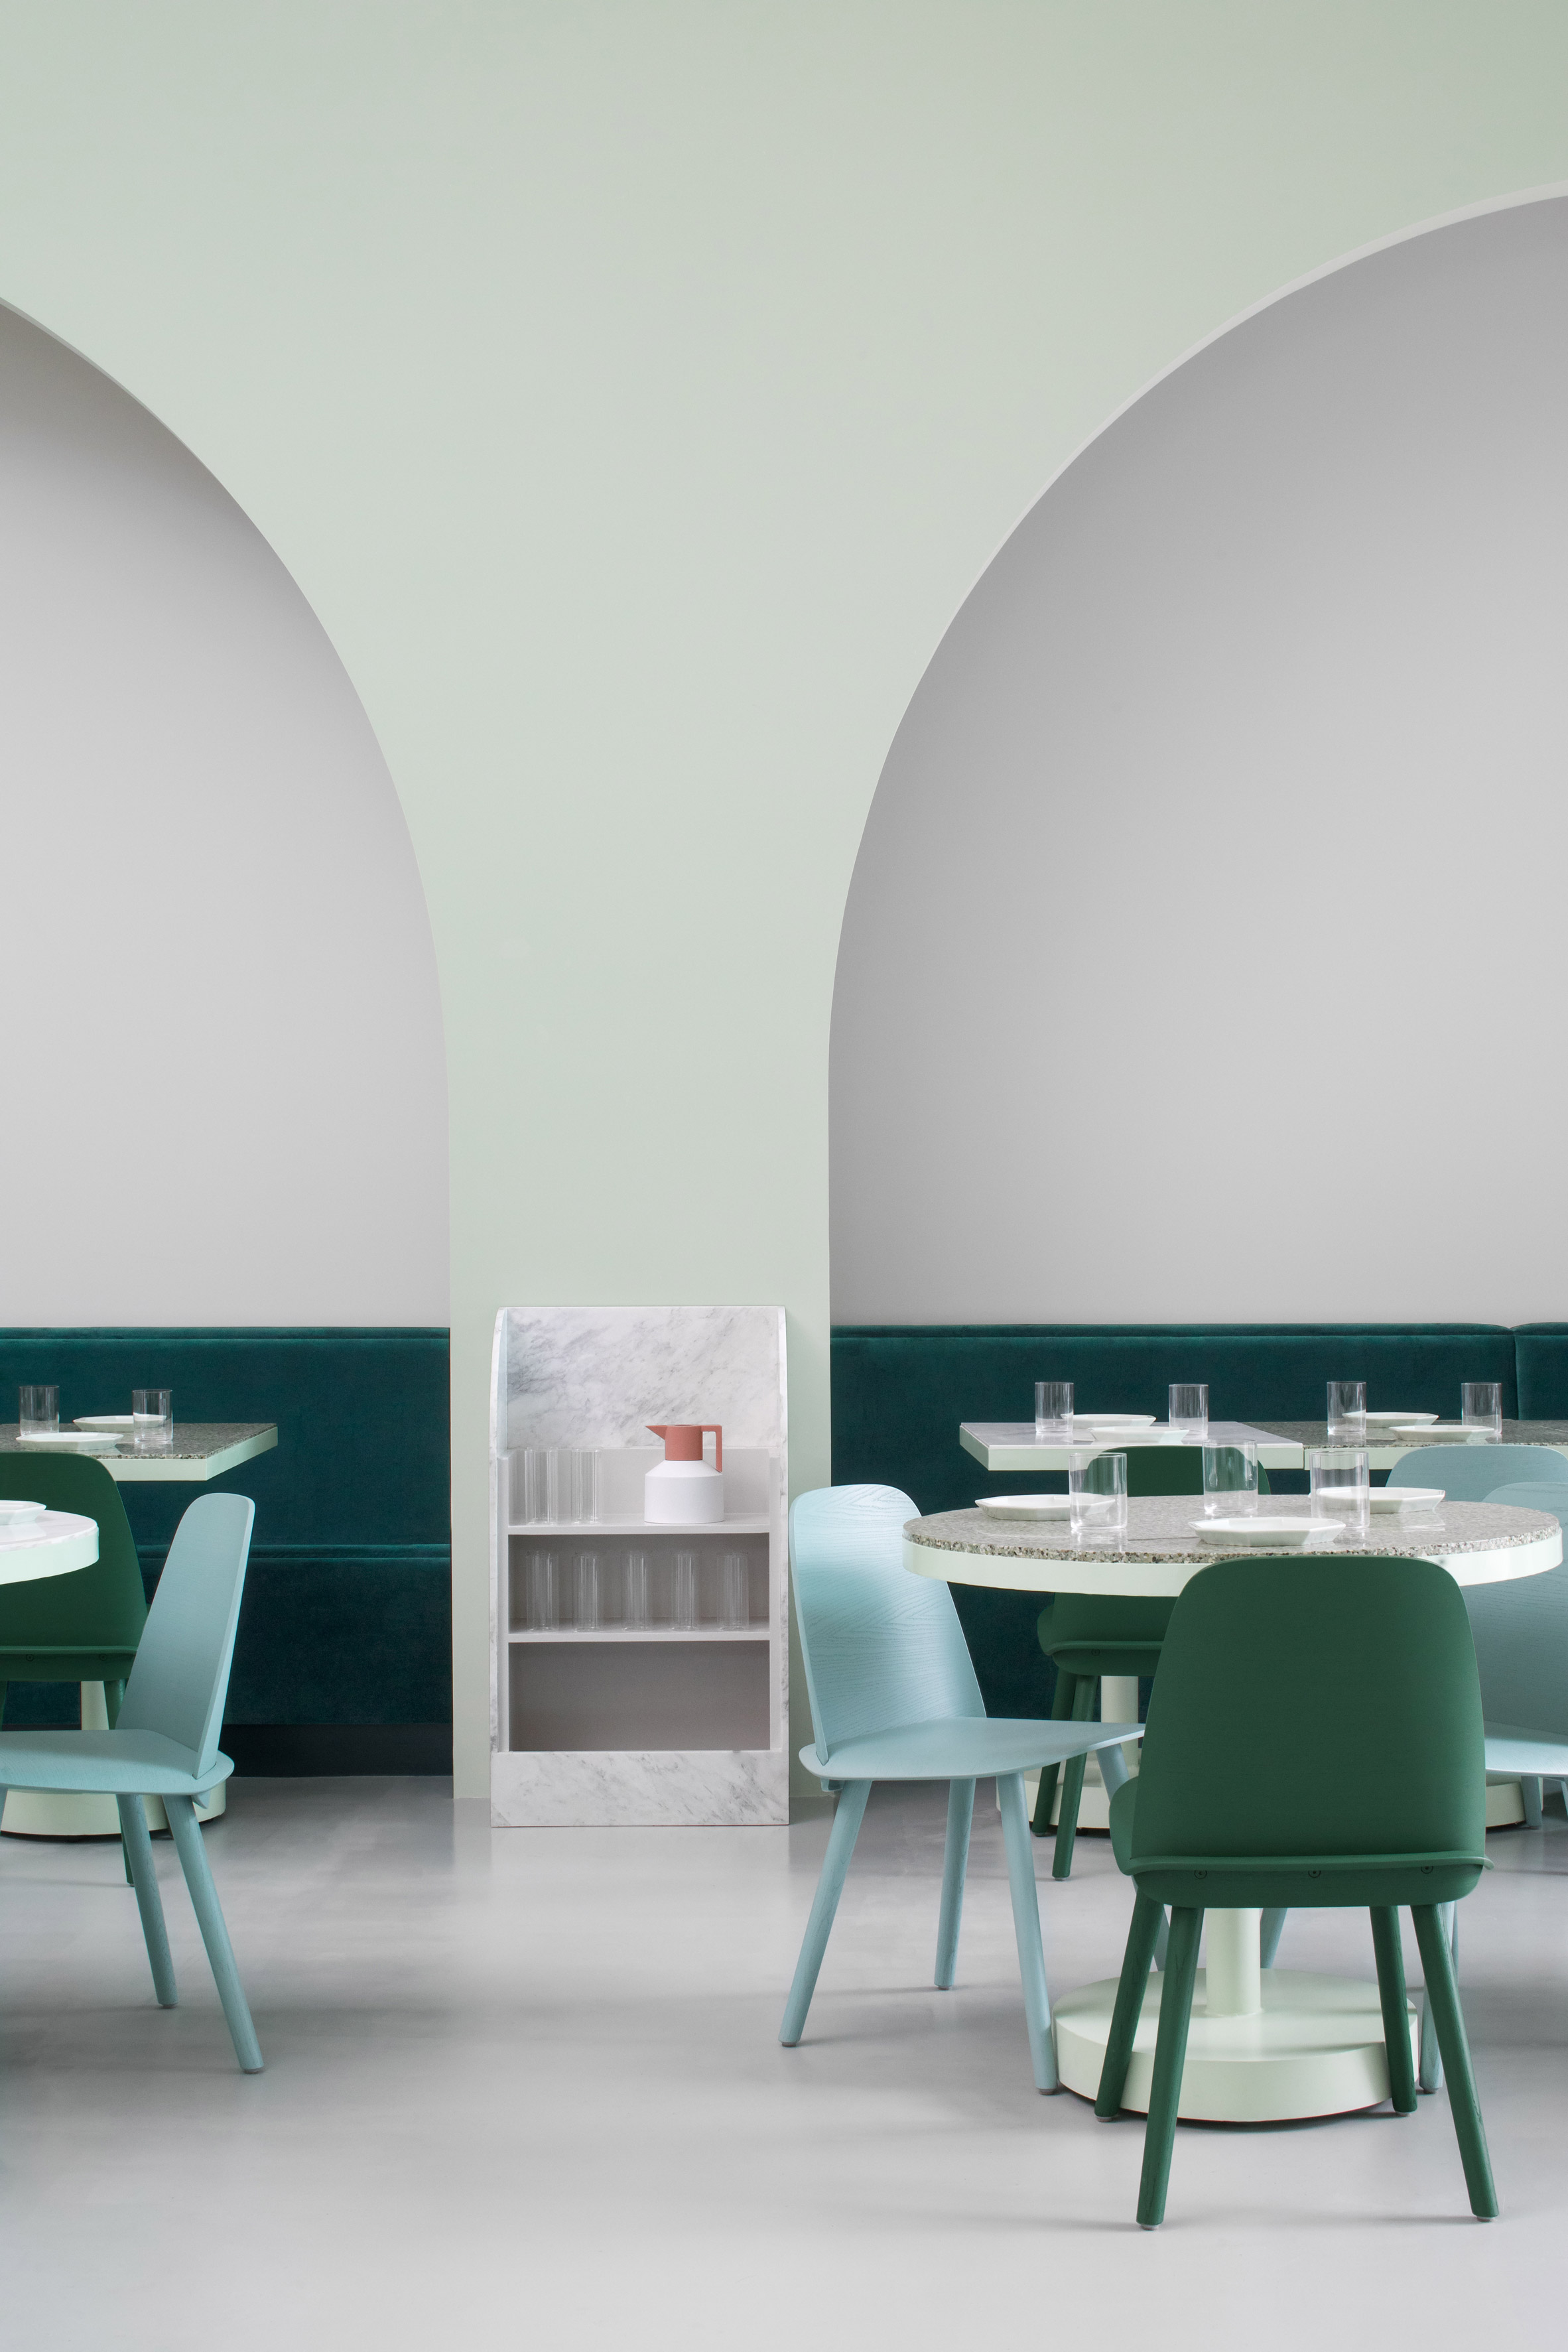 Chengdu cafe features interiors inspired by Wes Anderson's The Grand Budapest Hotel